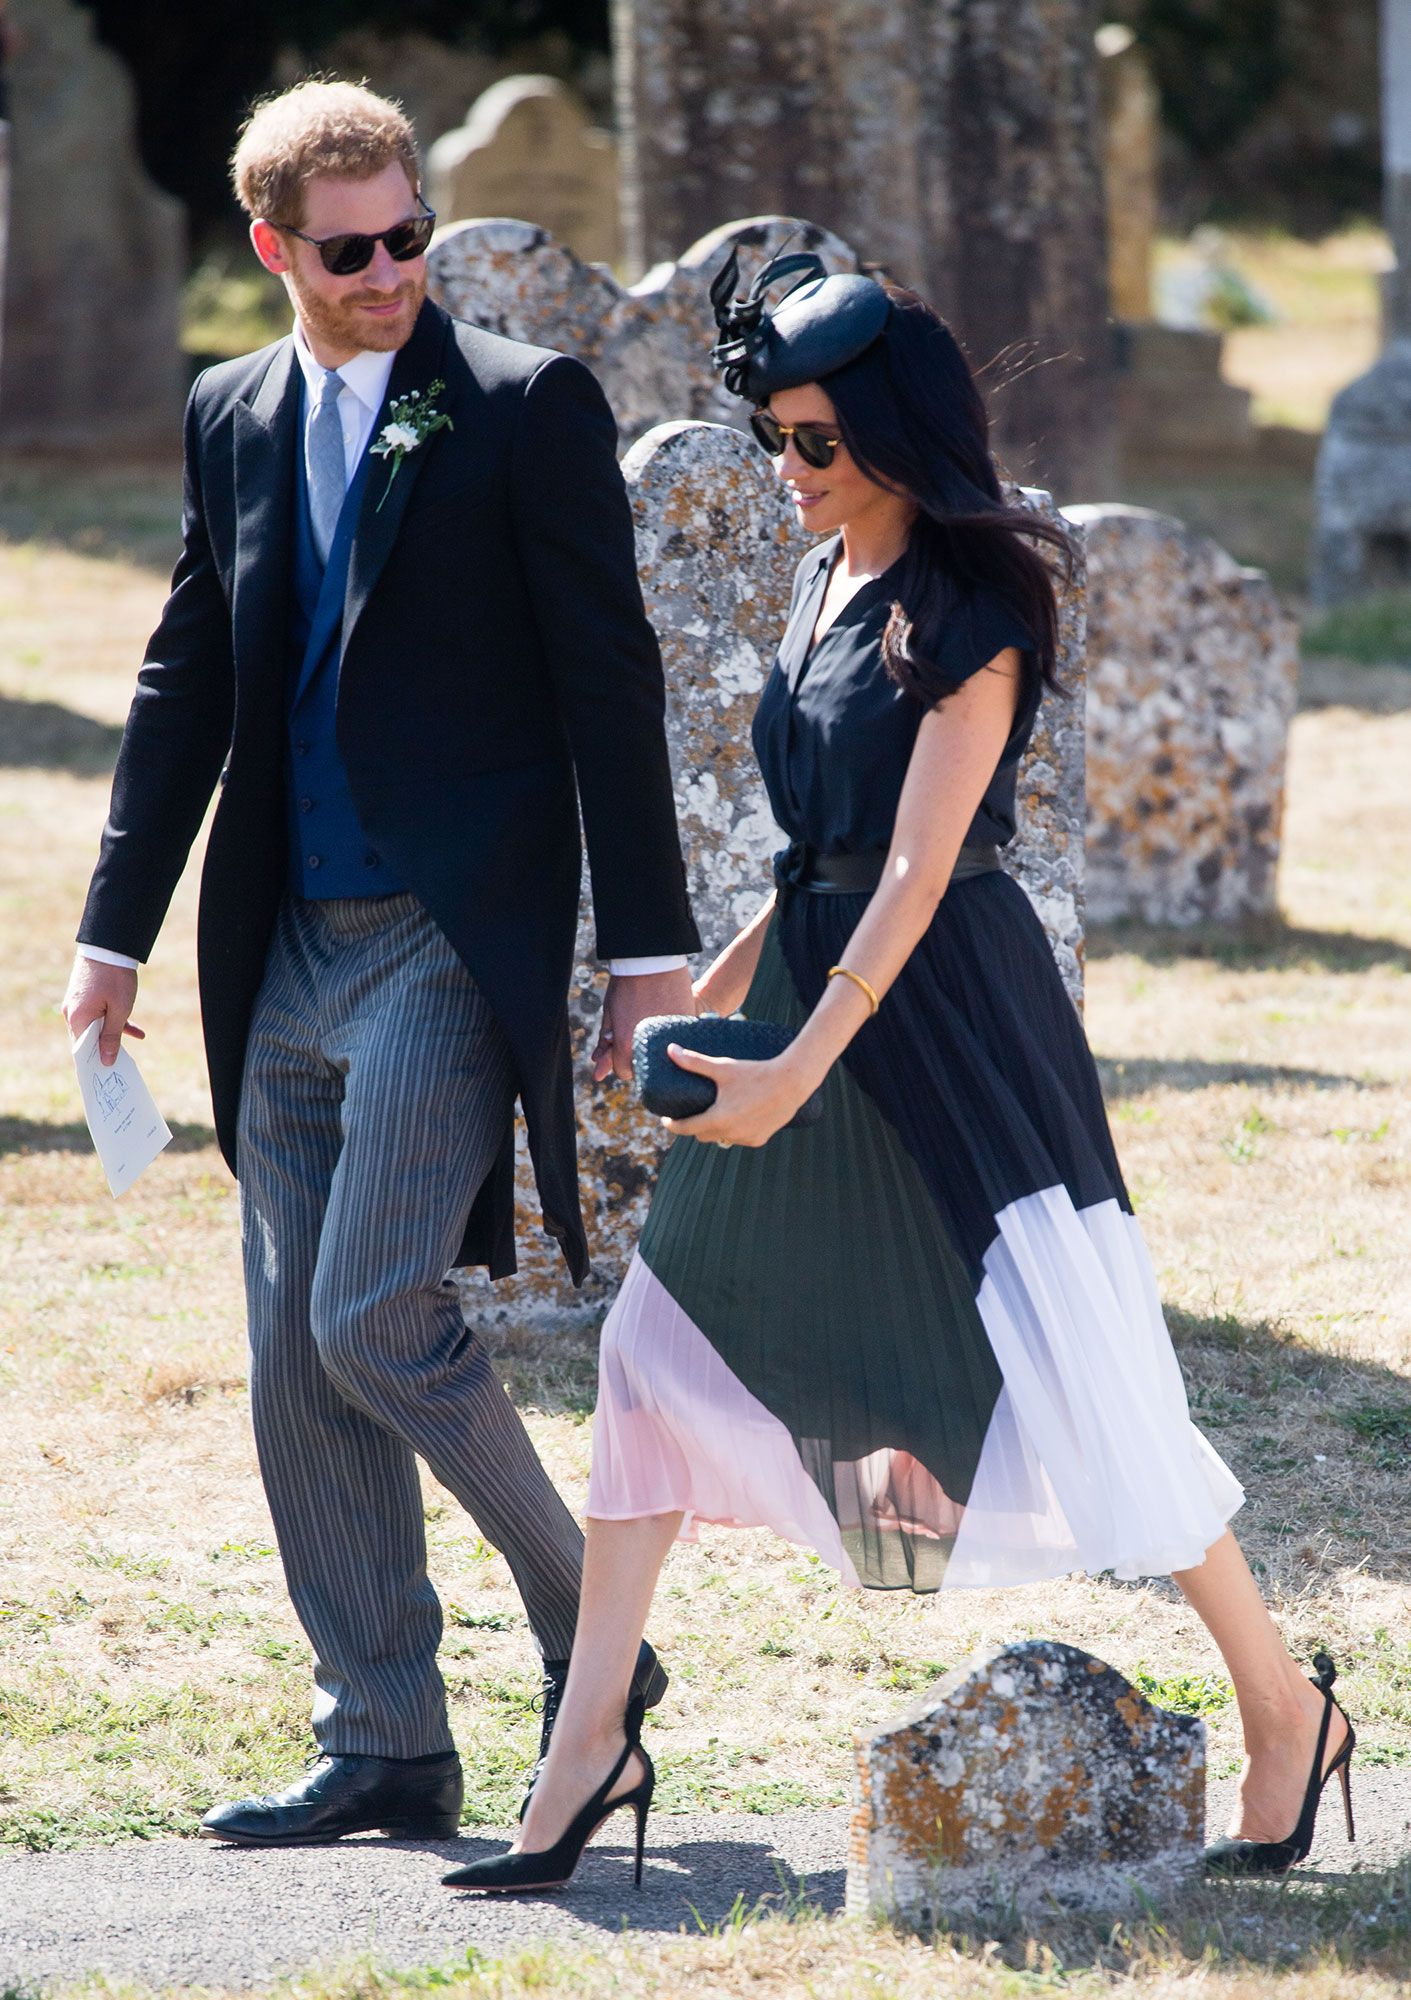 Meghan Markle and Prince Harry Hold Hands at Romantic